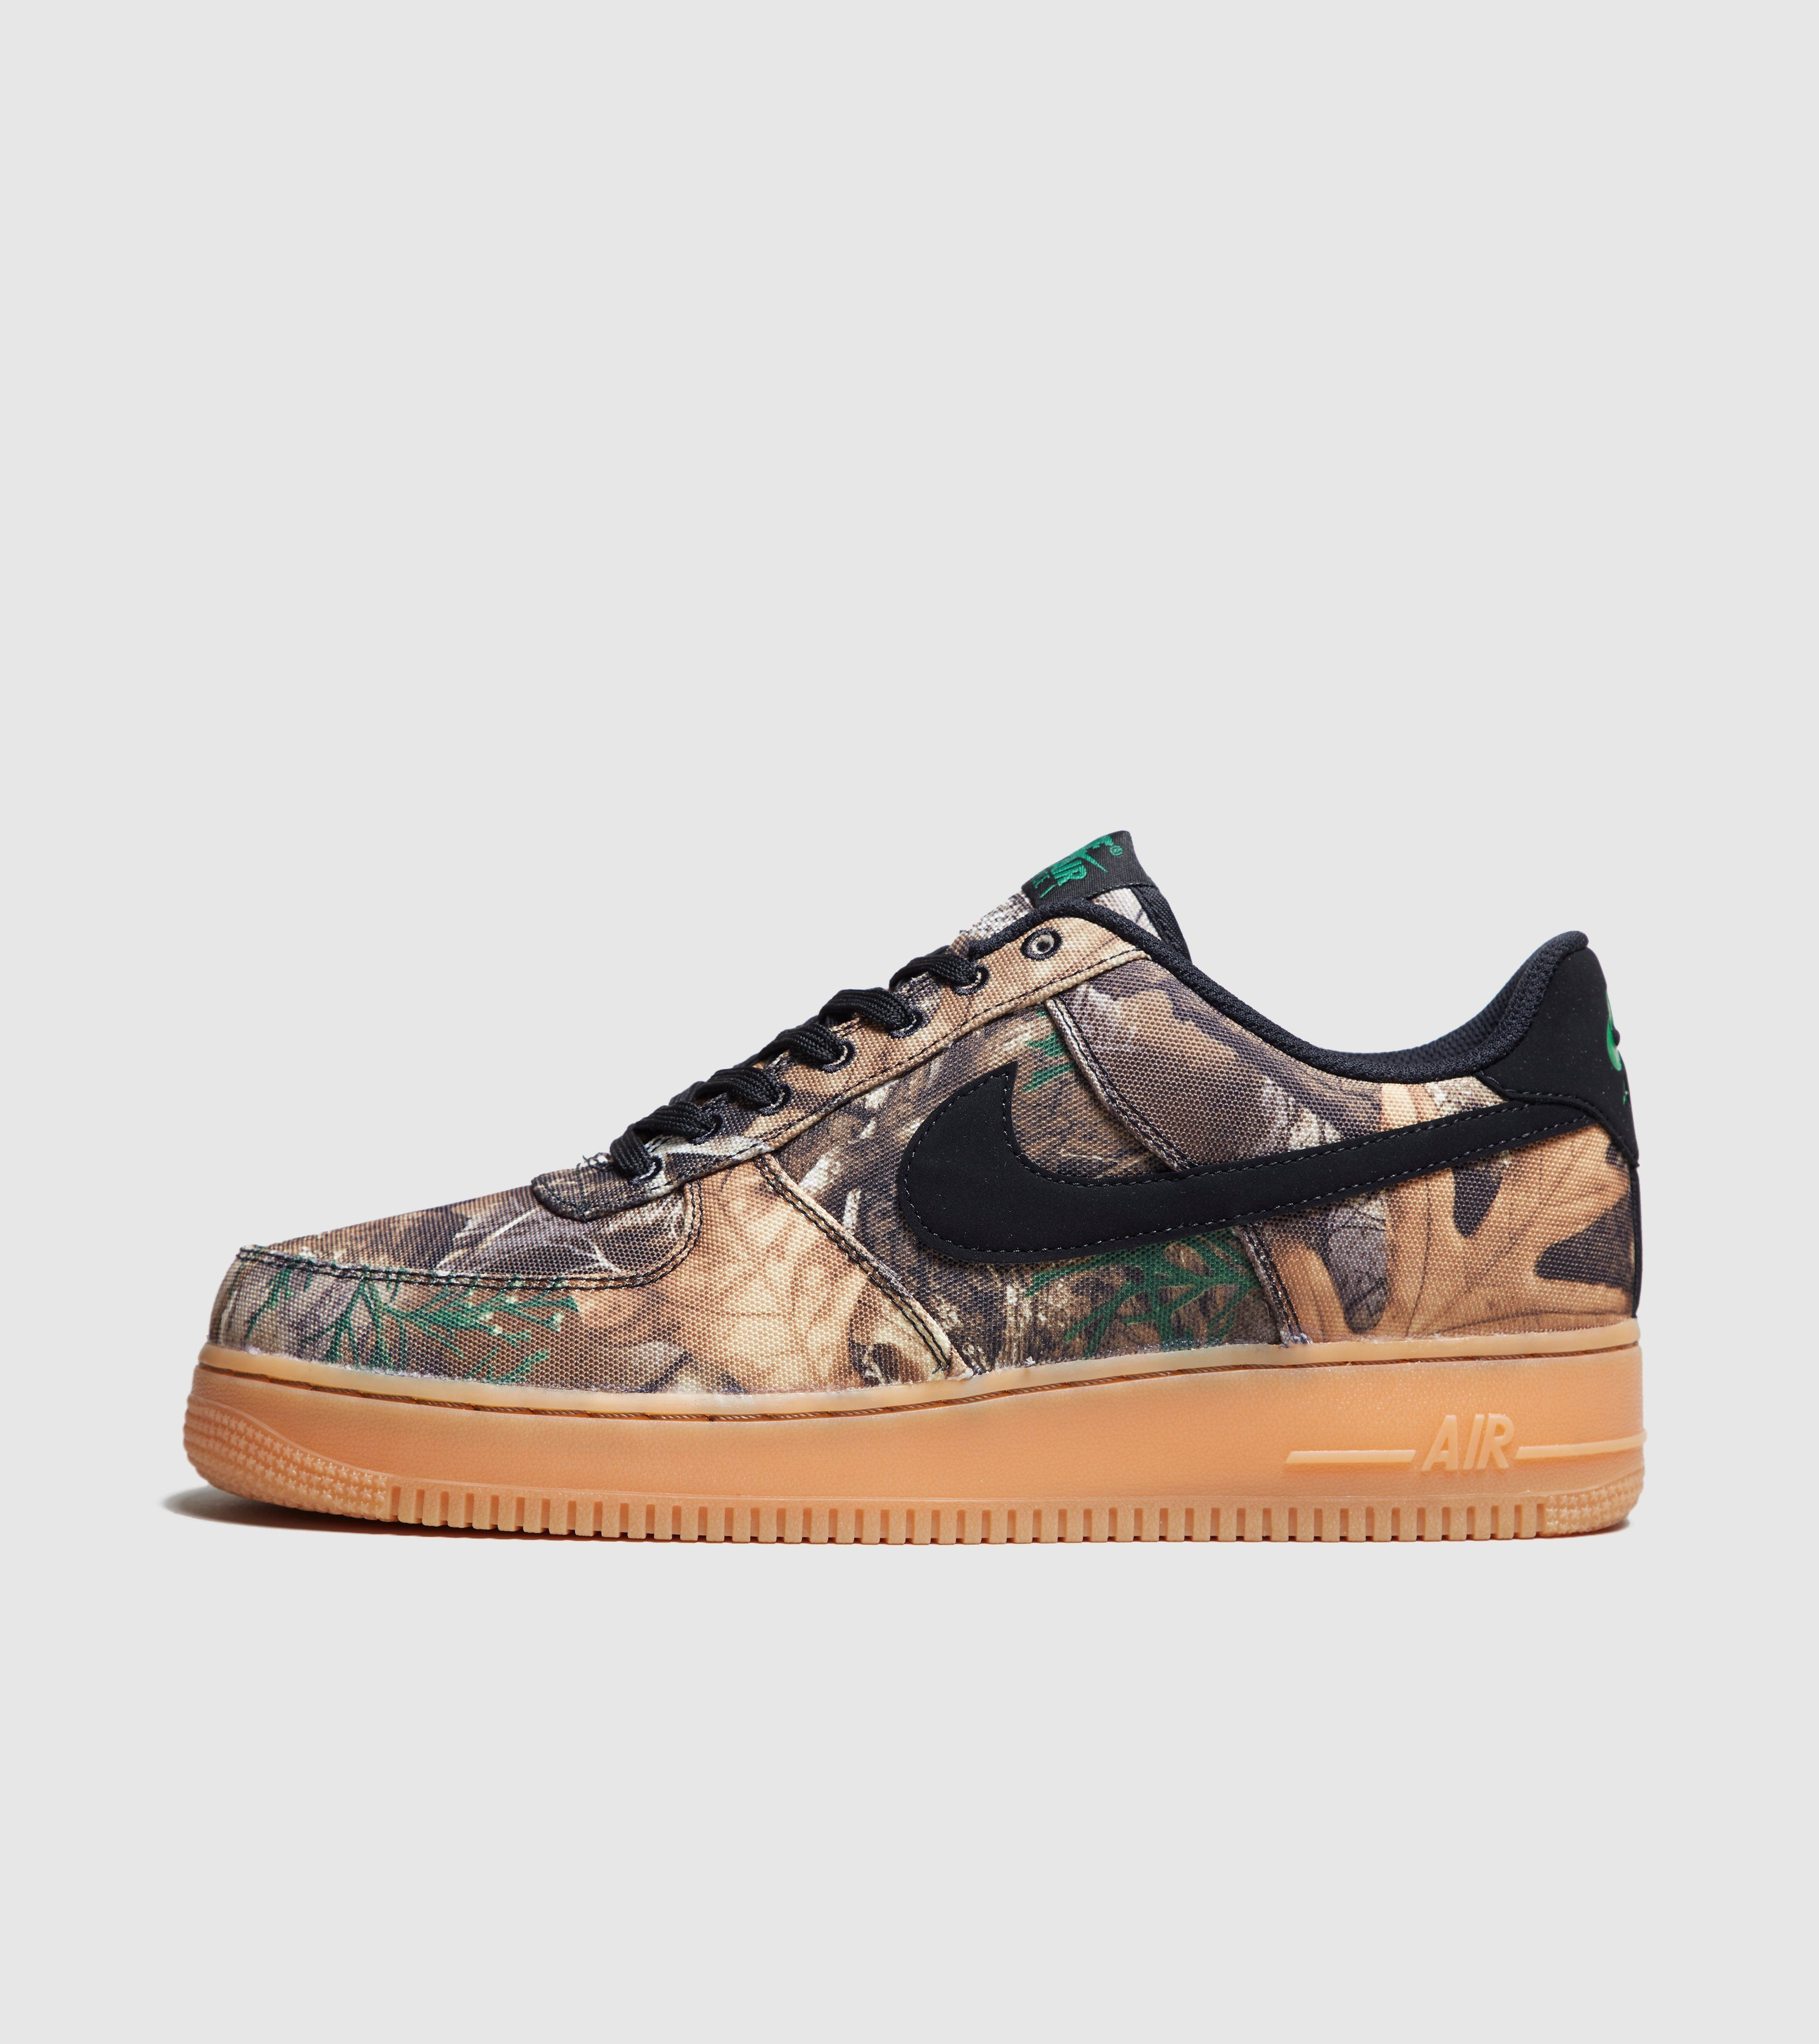 sports shoes b8ca3 58001 Nike Air Force 1 Low Realtree Camo Pack